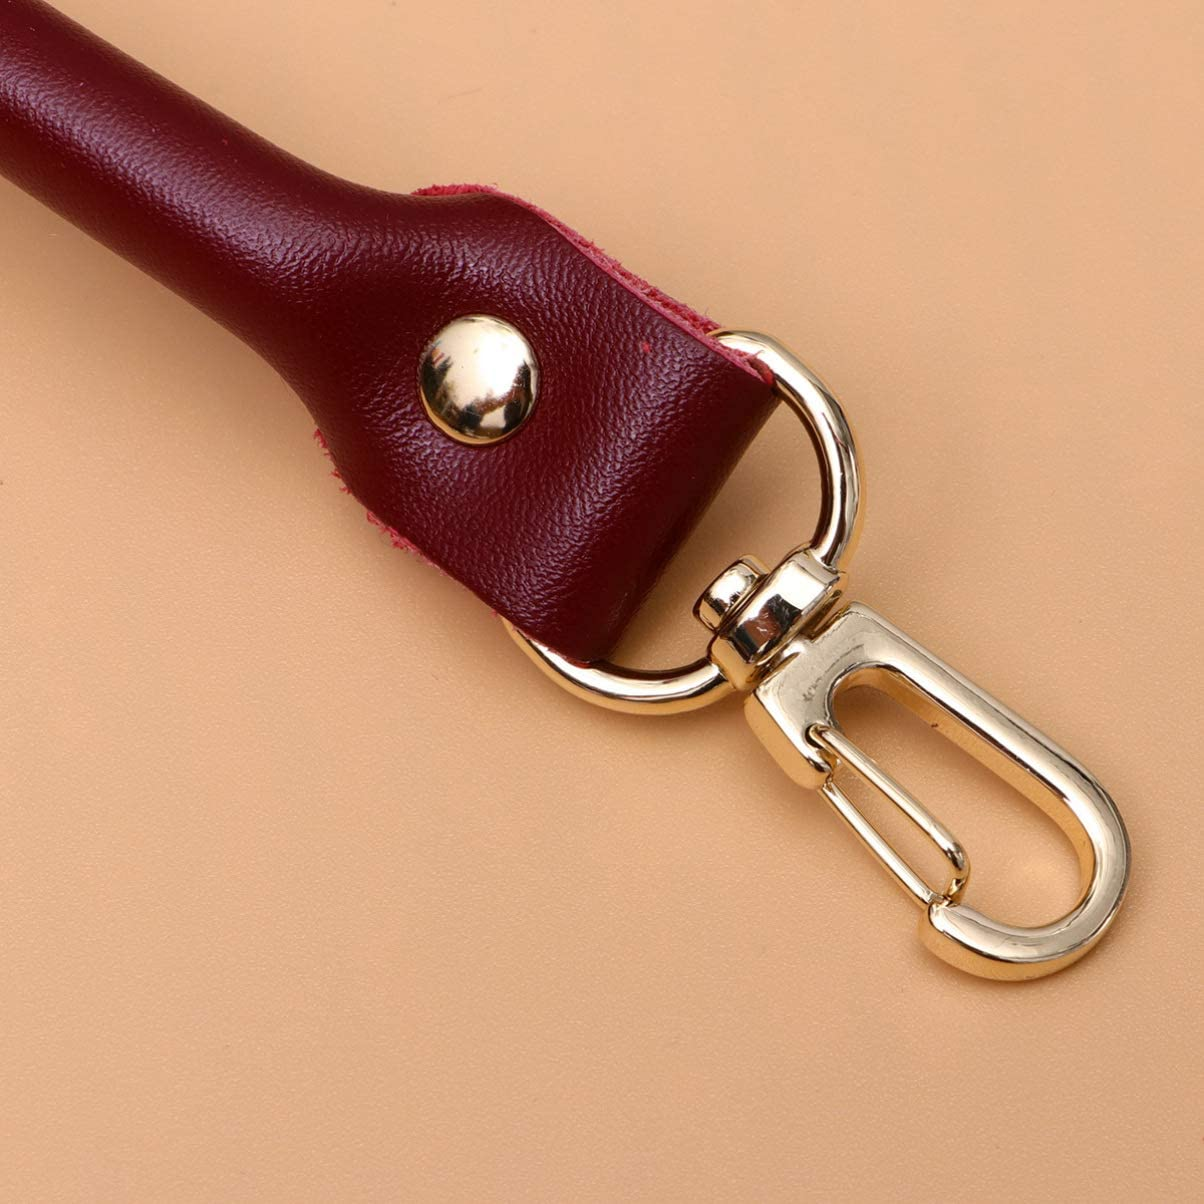 40CM Brown Healifty 2PCS Leather Handbag Handles Replacement Purse Wallet Straps with Metal Lobste Buckle